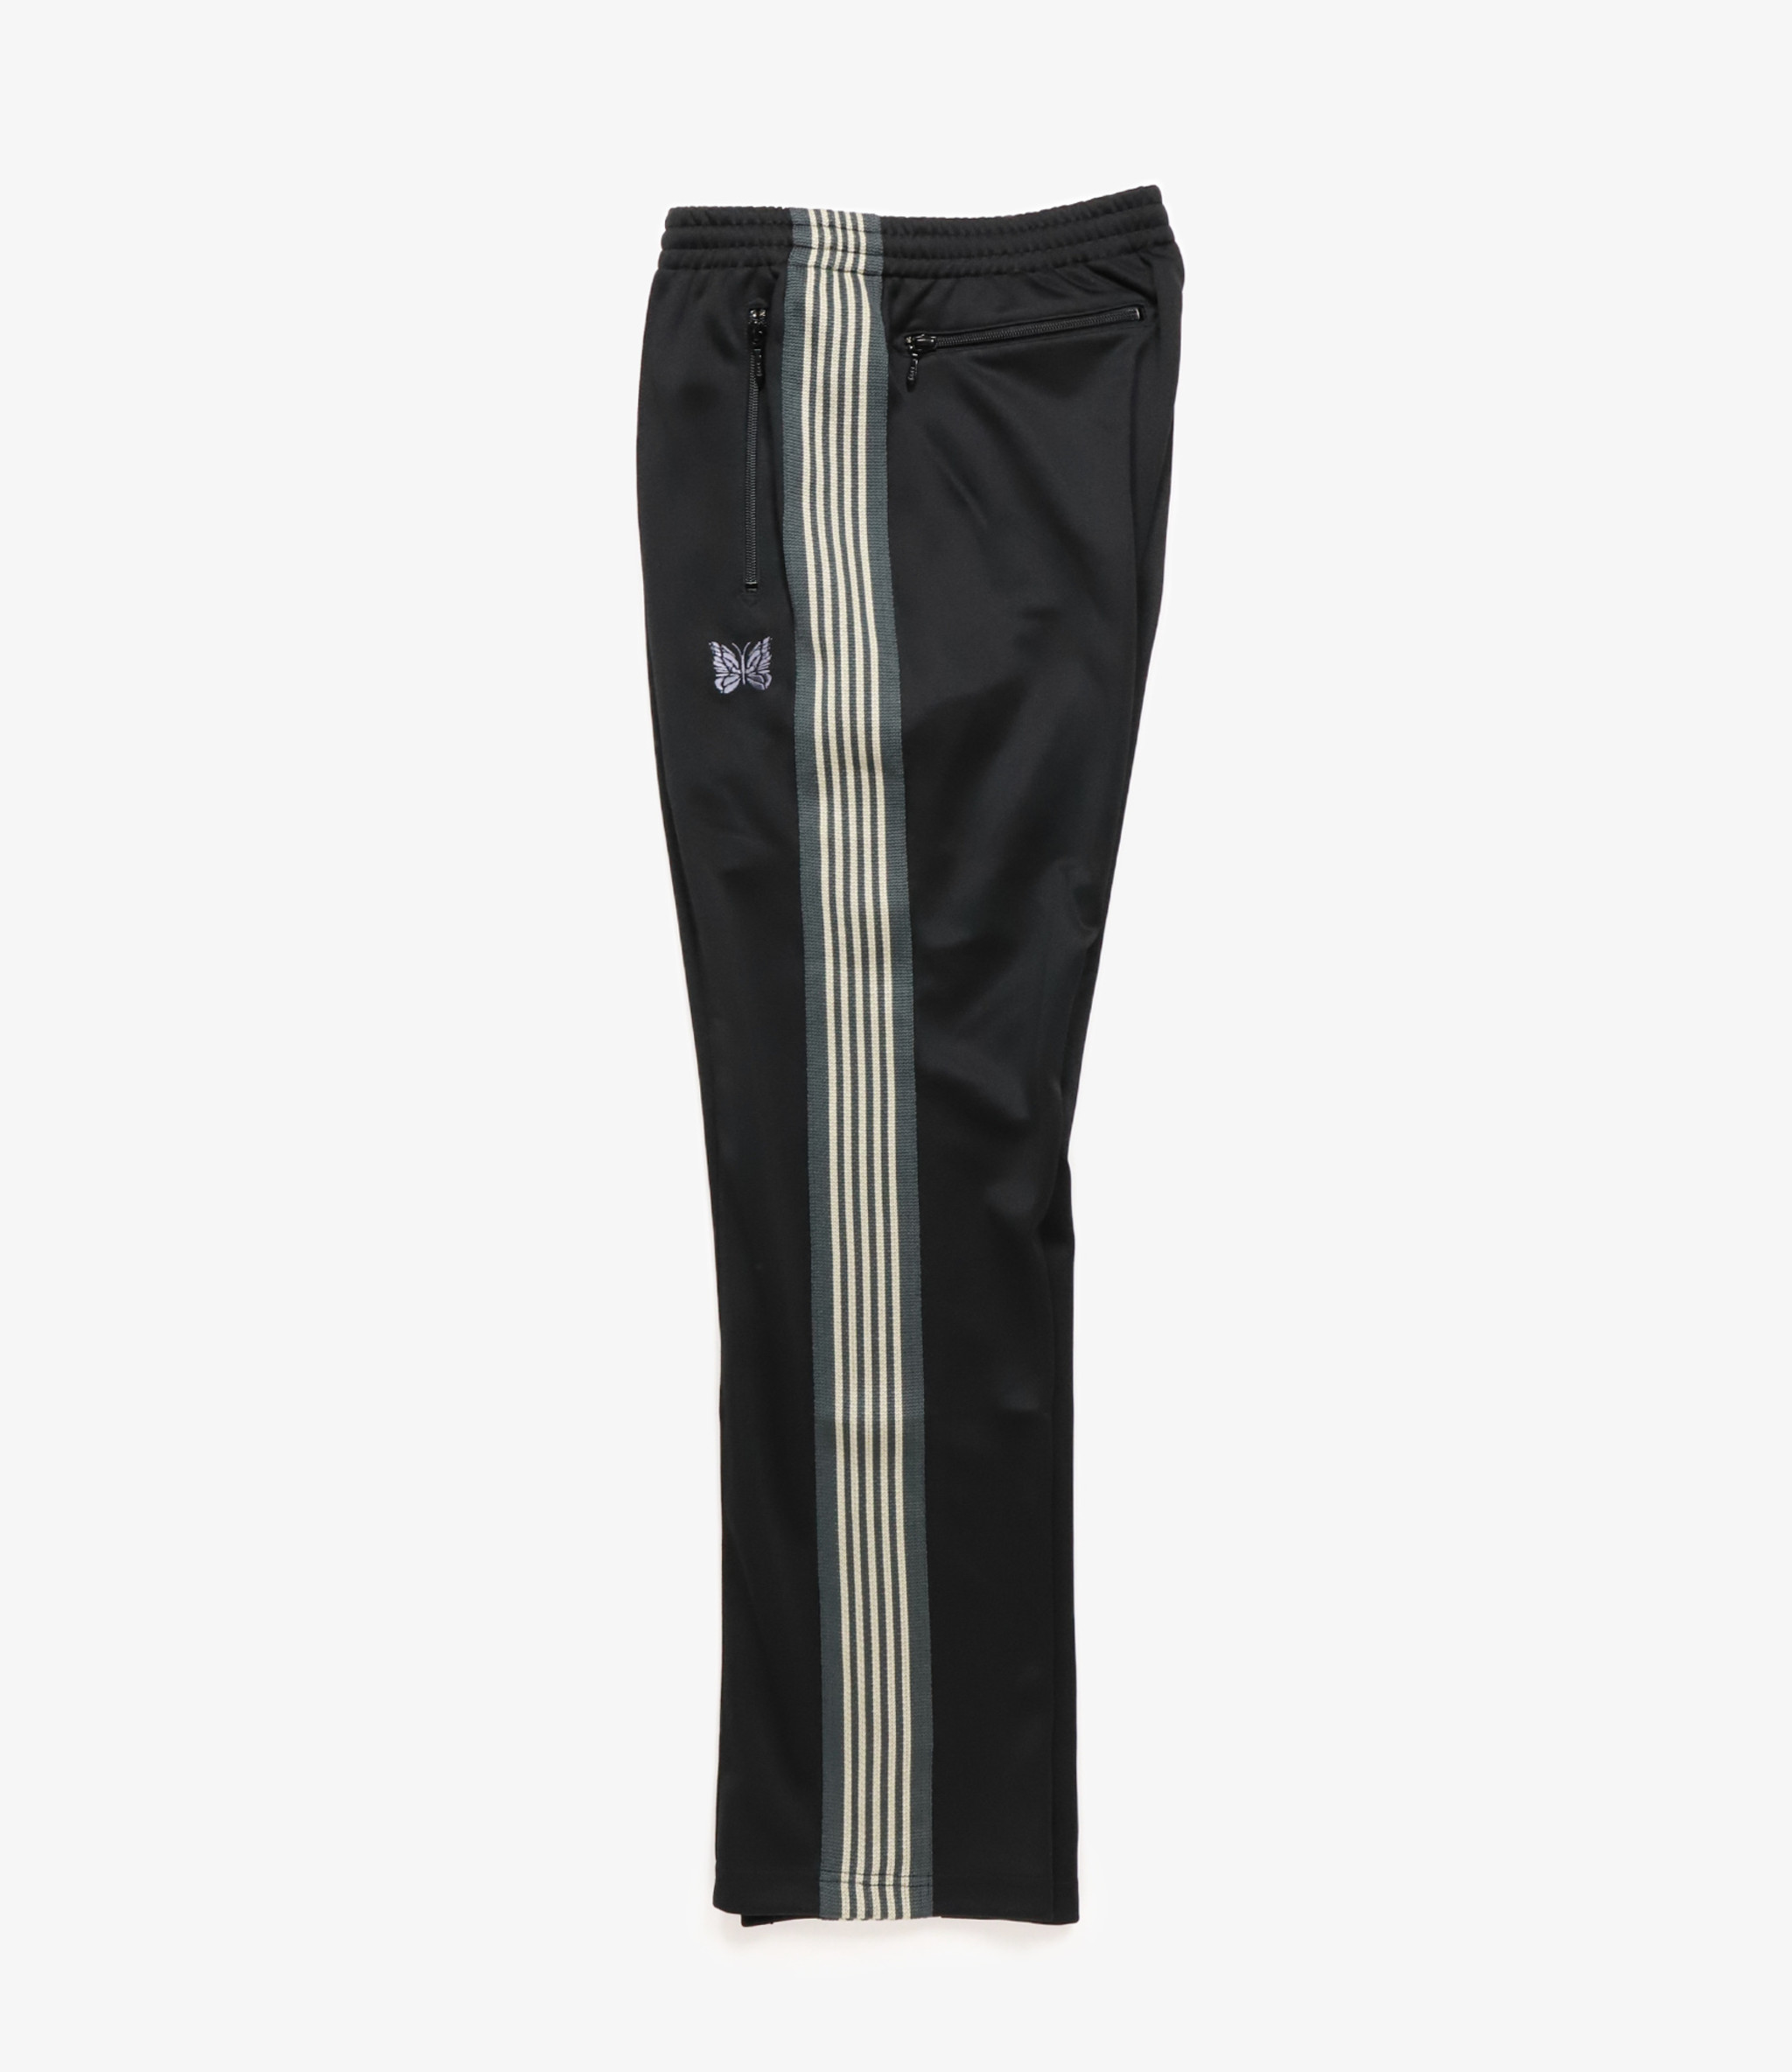 Needles SHOP SPECIAL - Narrow Track Pant - Poly Smooth - Black